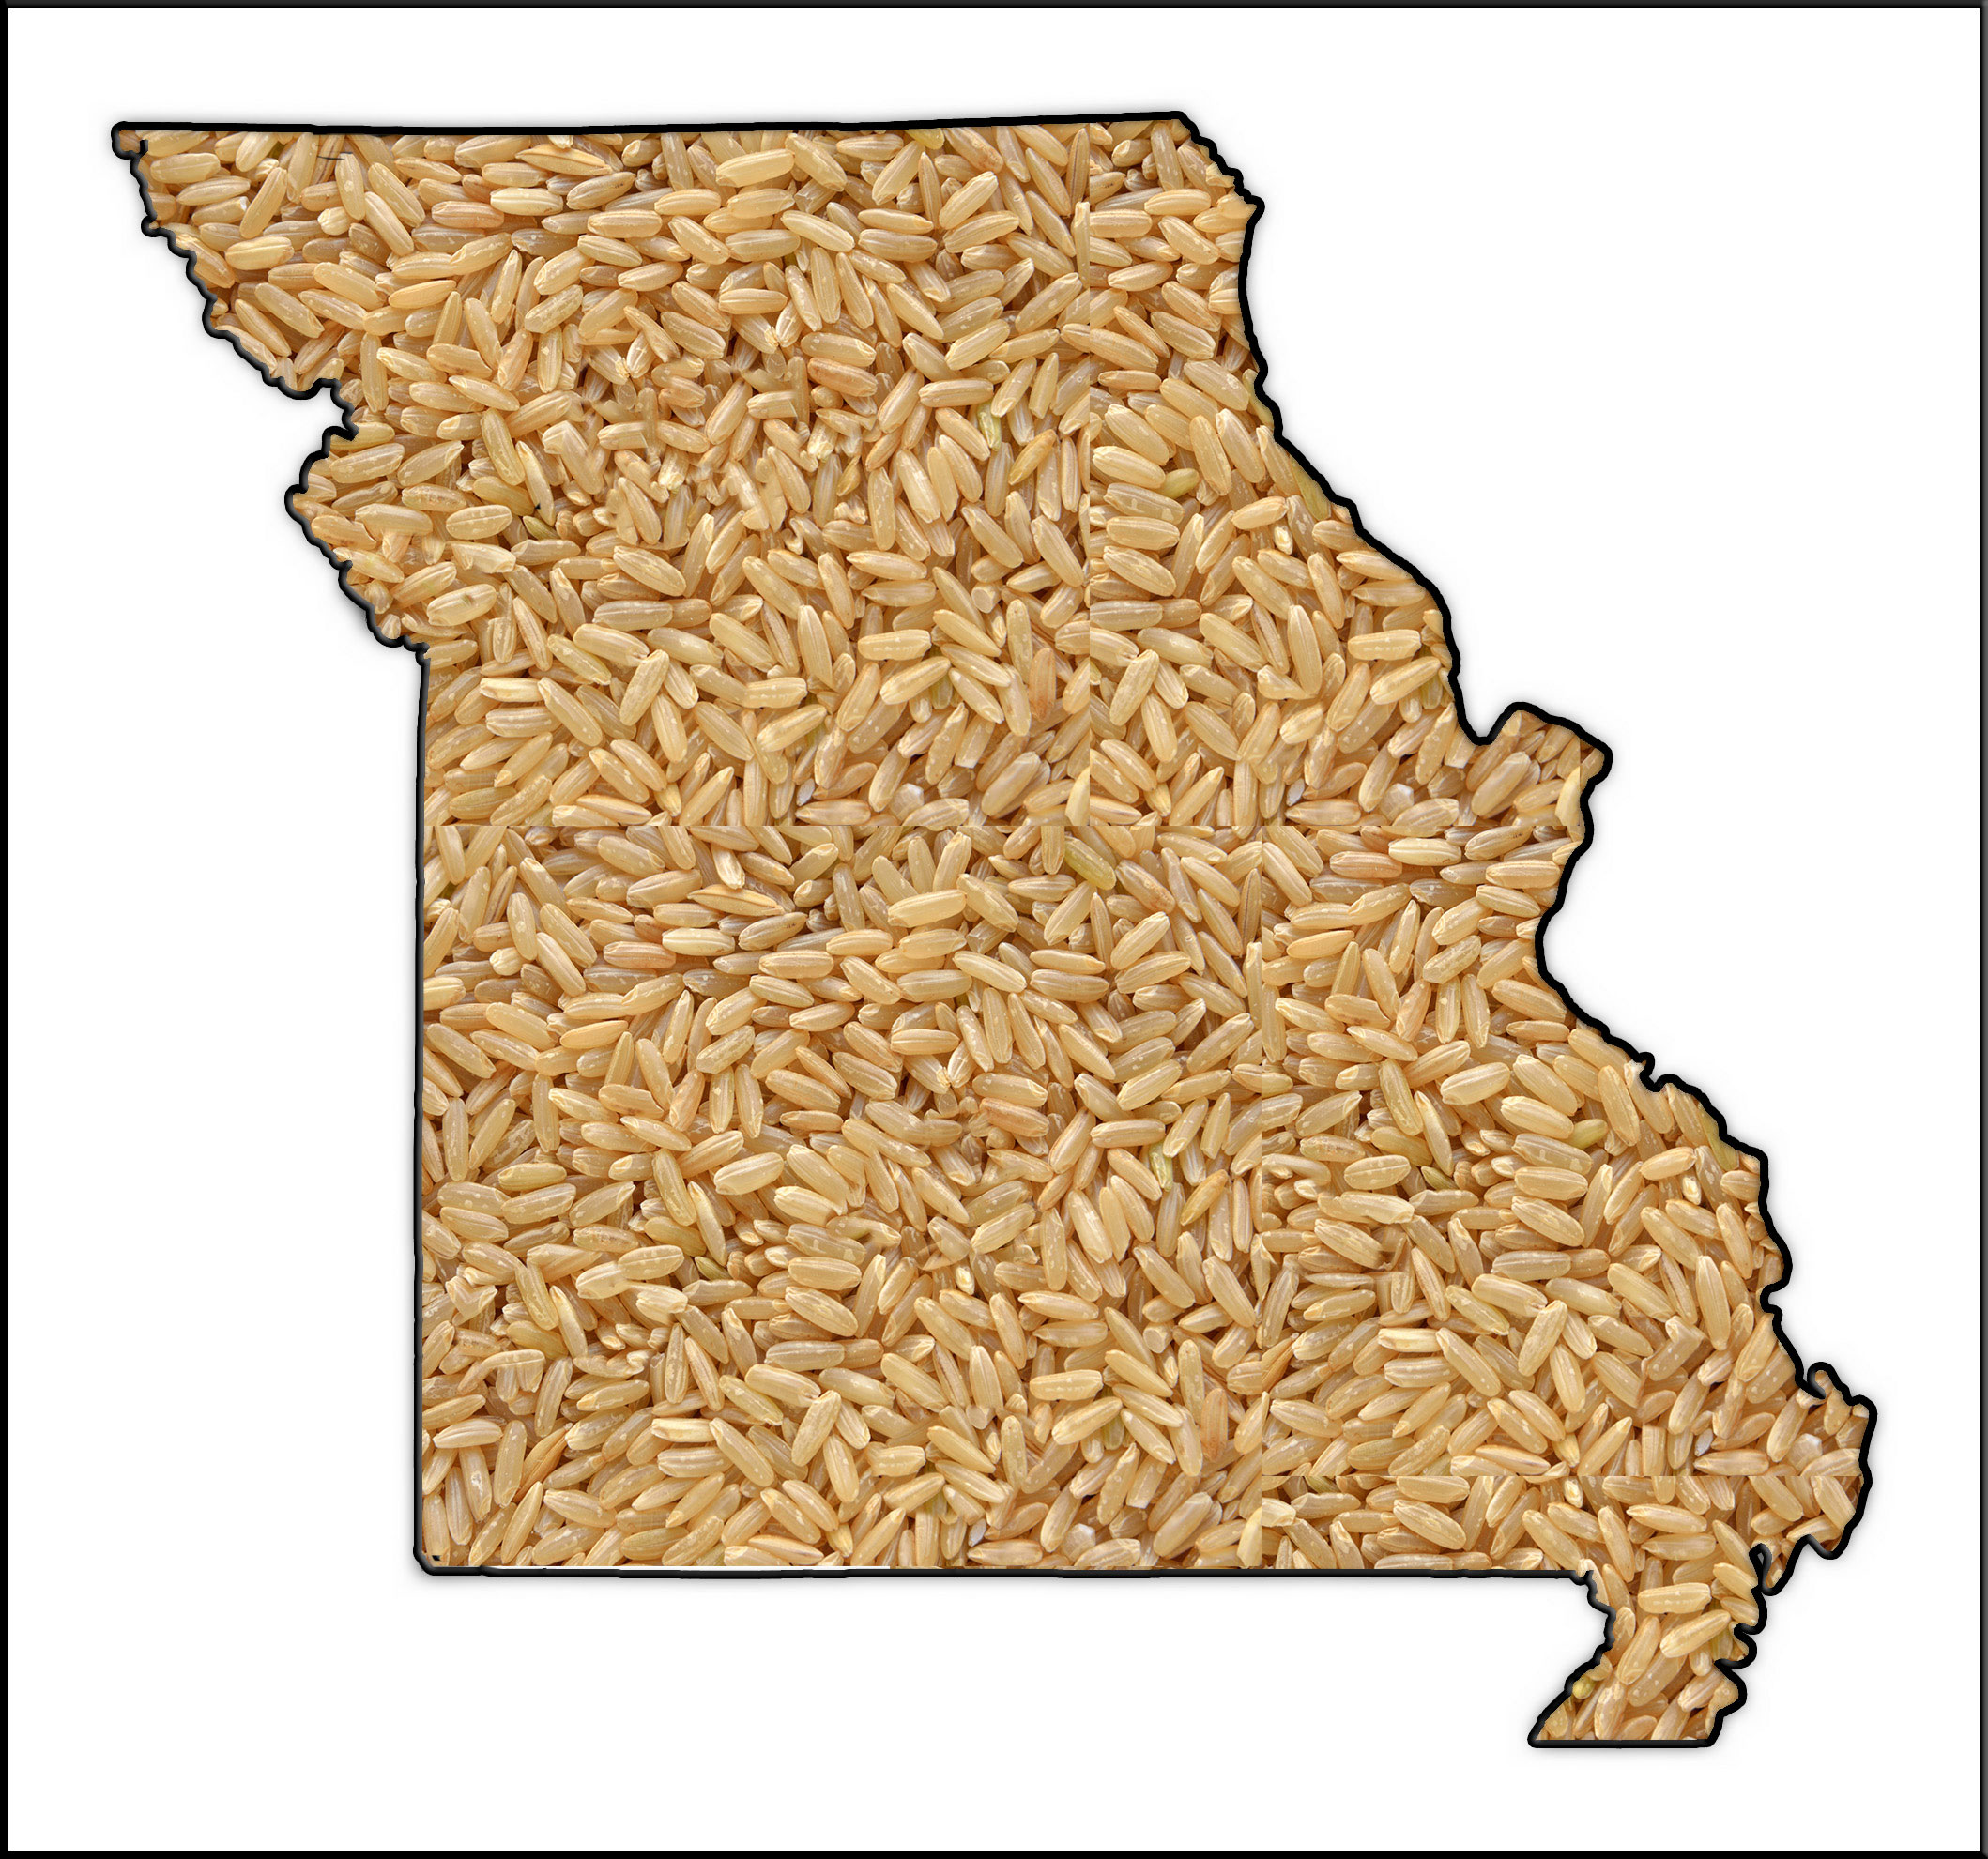 Outline of the state of MO-filled with rice